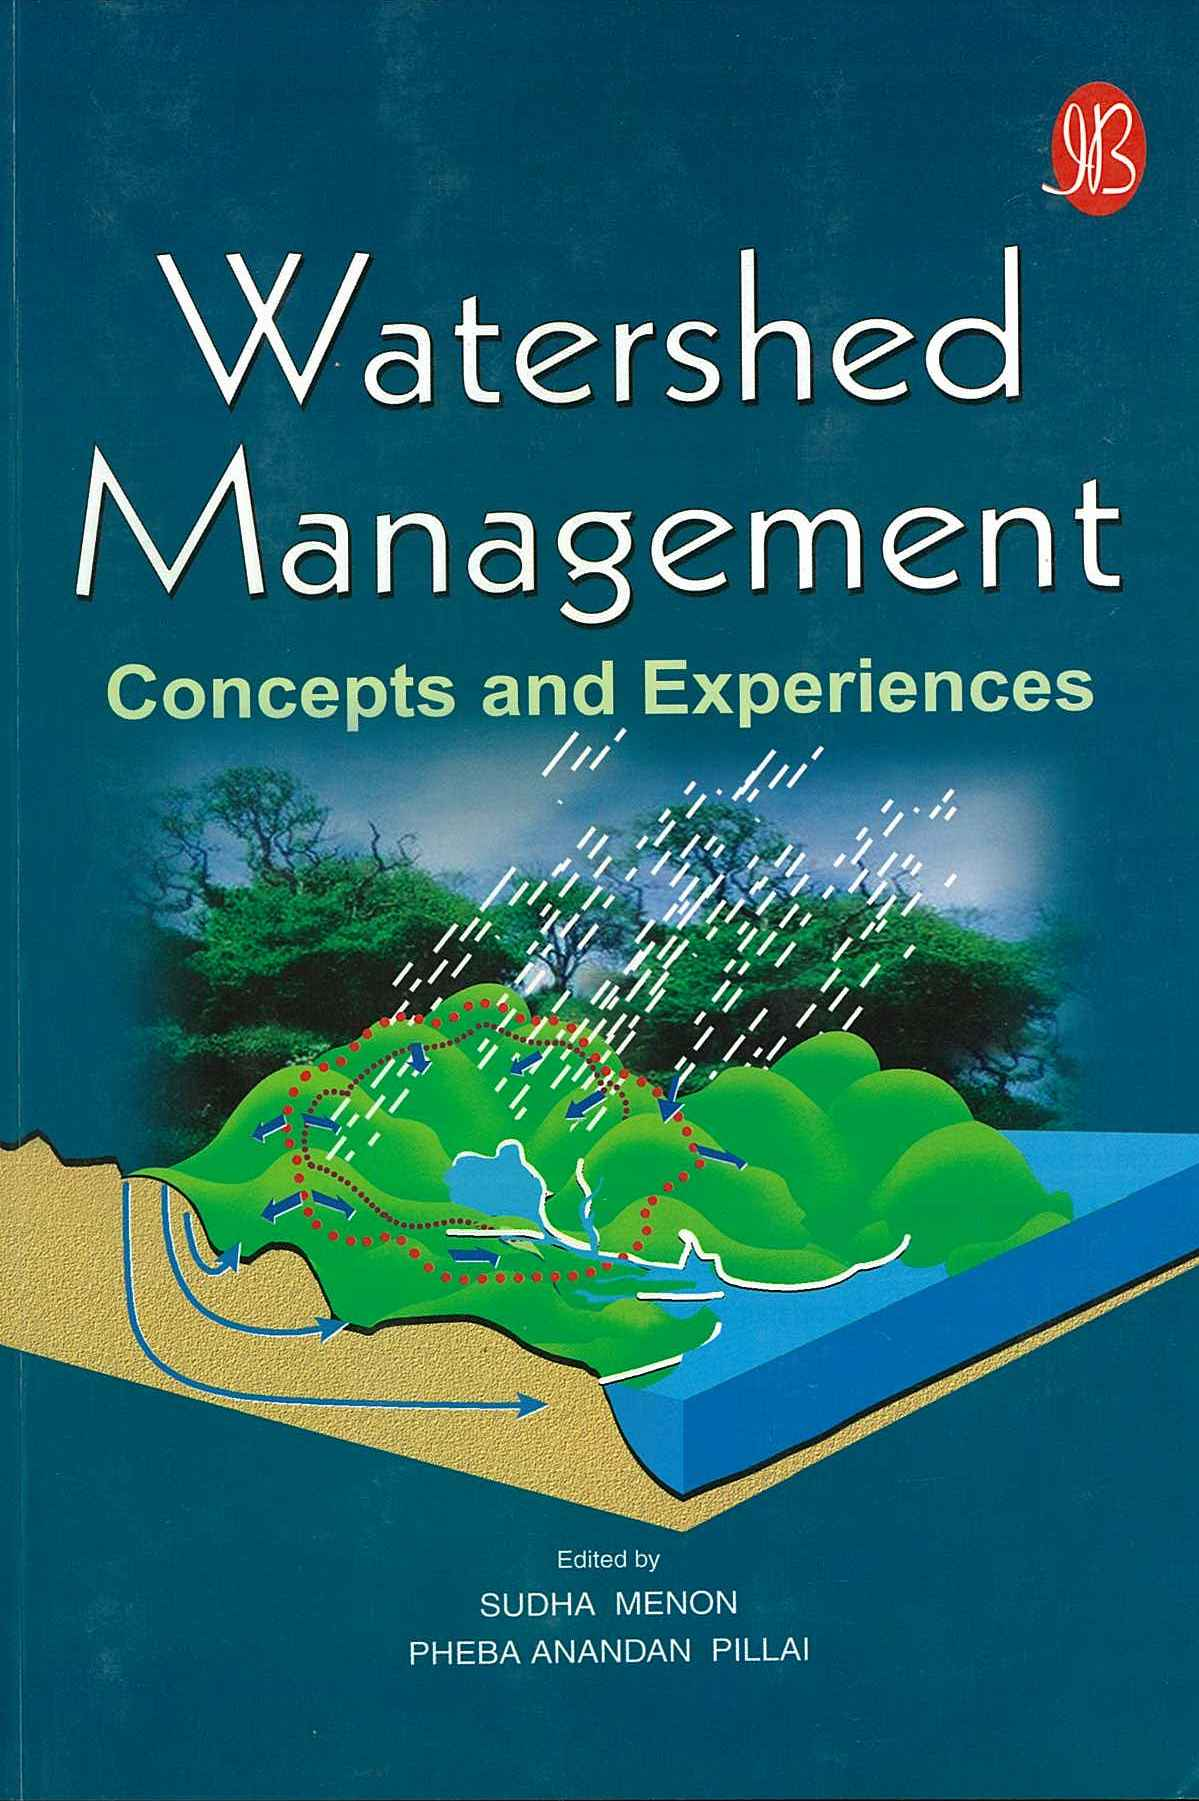 Challenges to decentralization of watershed management